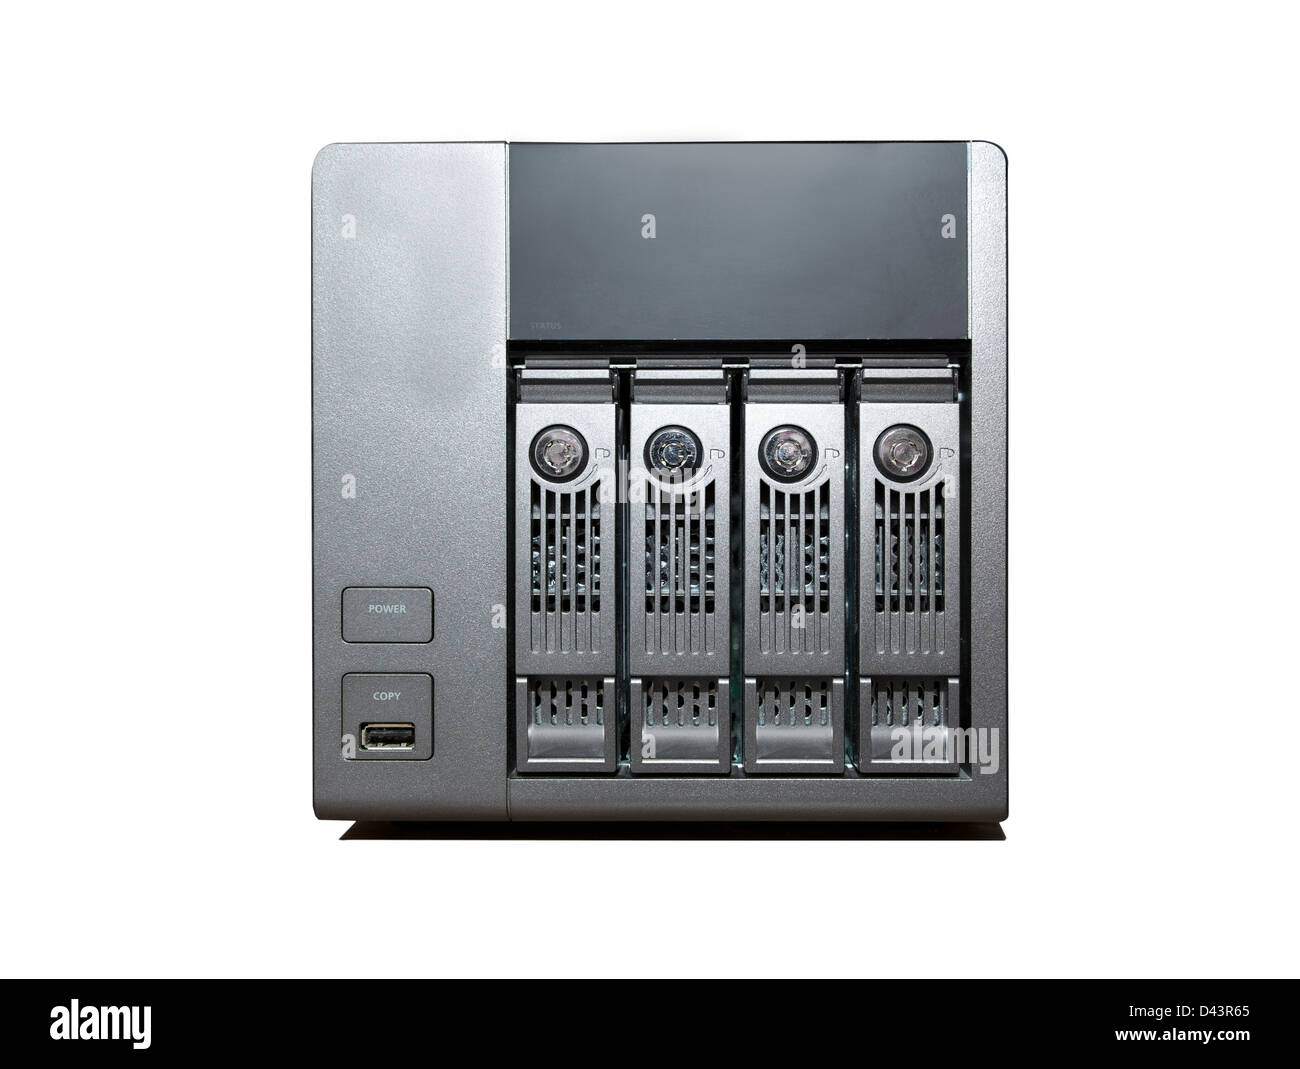 4 bay NAS Drive isolated on a white background - Stock Image